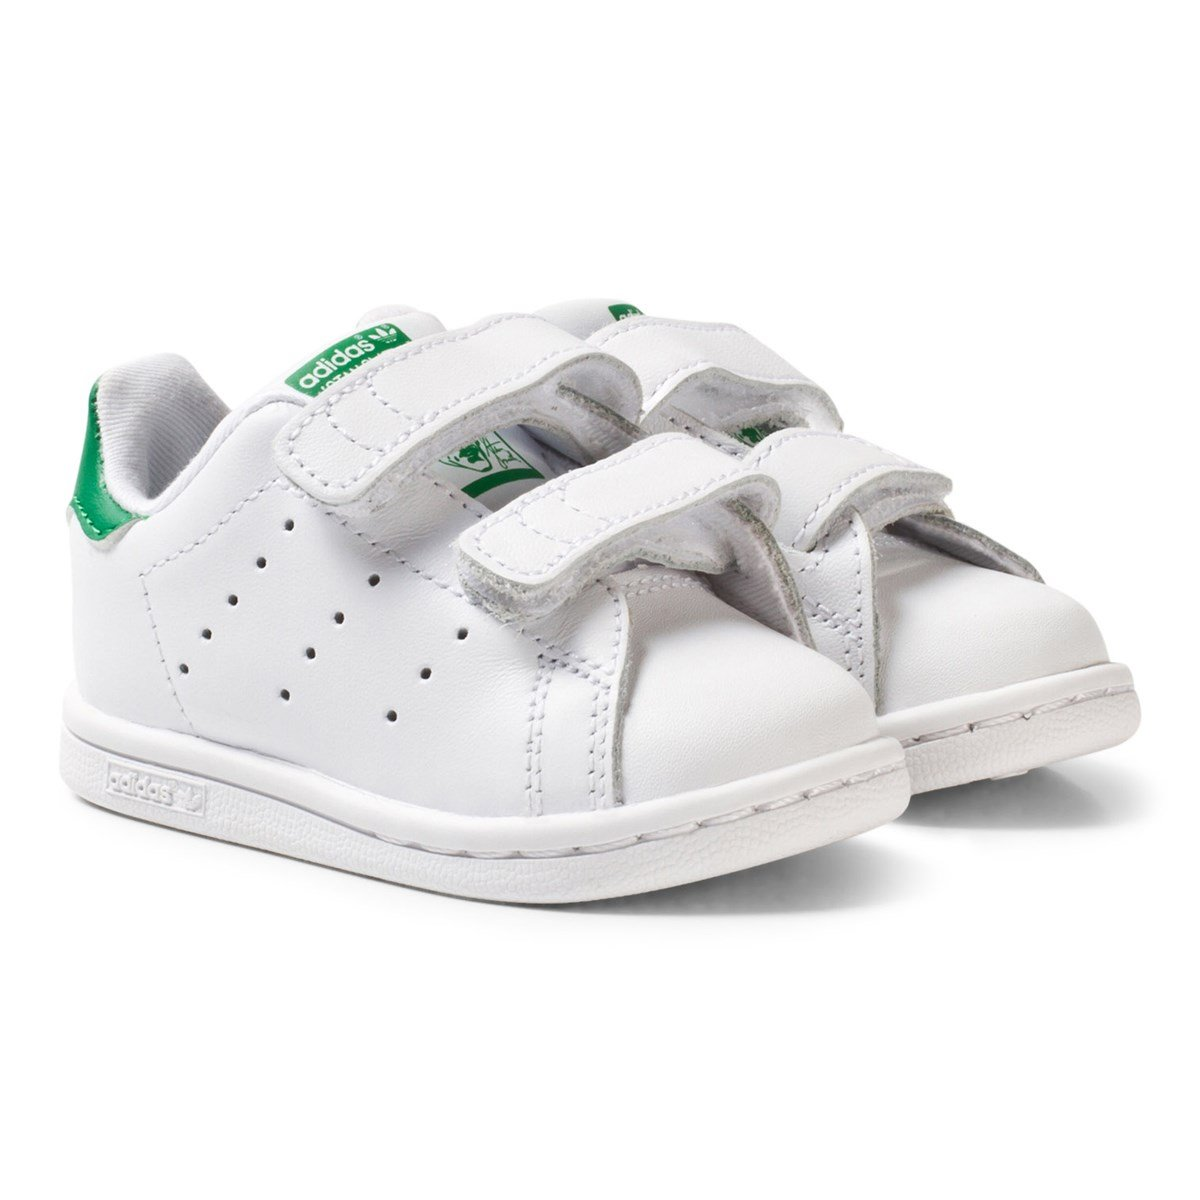 huge discount 974ca dbce7 adidas Originals - White and Green Stan Smith Infants Velcro Sneakers -  Babyshop.com